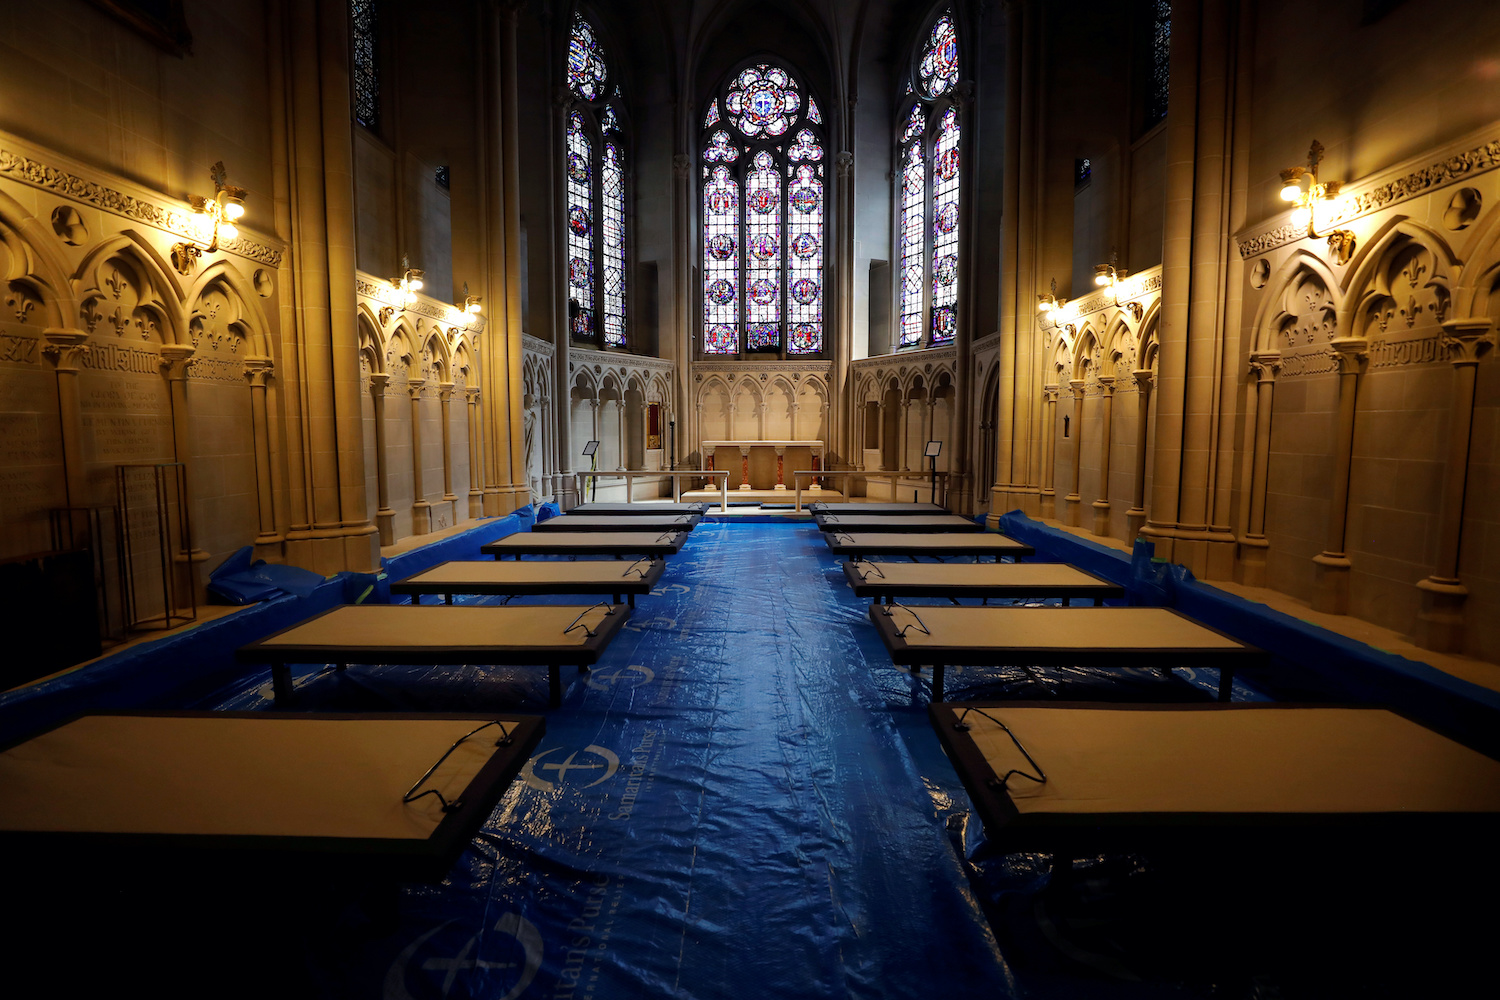 Hospital beds are laid out in a chapel inside the Cathedral Church of St John the Divine for a temporary field hospital to deal with coronavirus patients in New York City. (Reuters Photo)